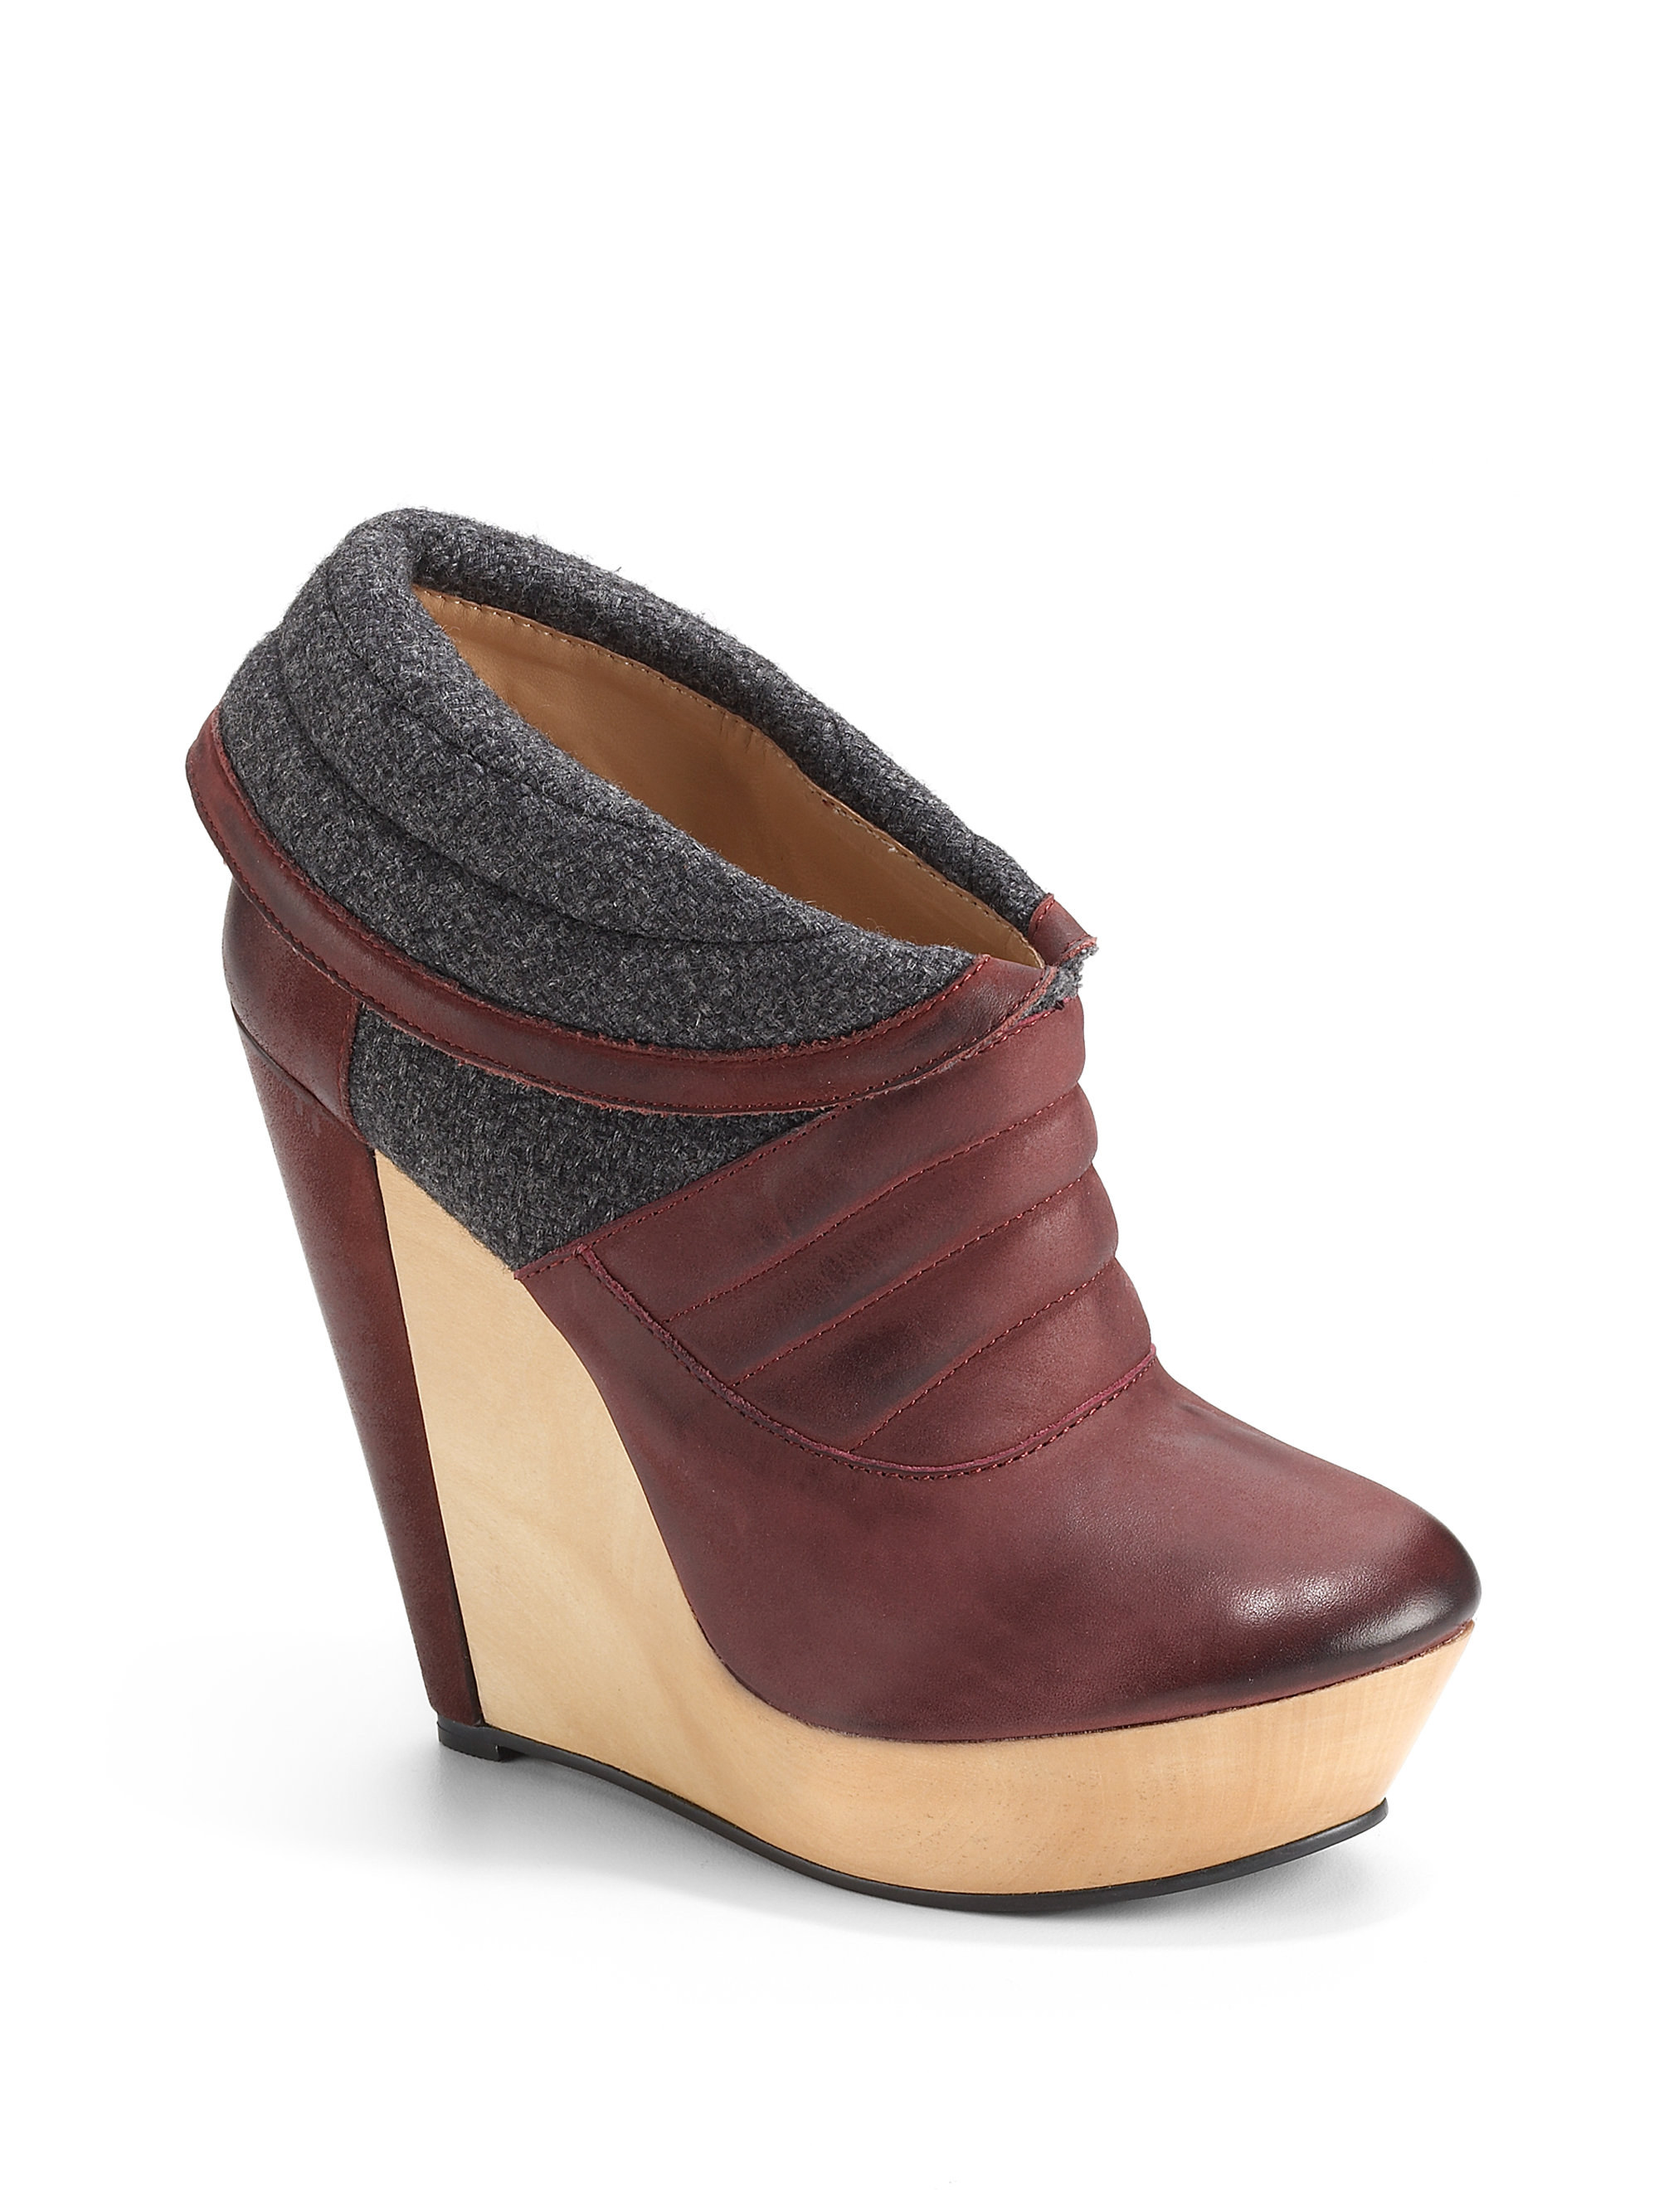 messeca charmene leather flannel wedge ankle bootswine in